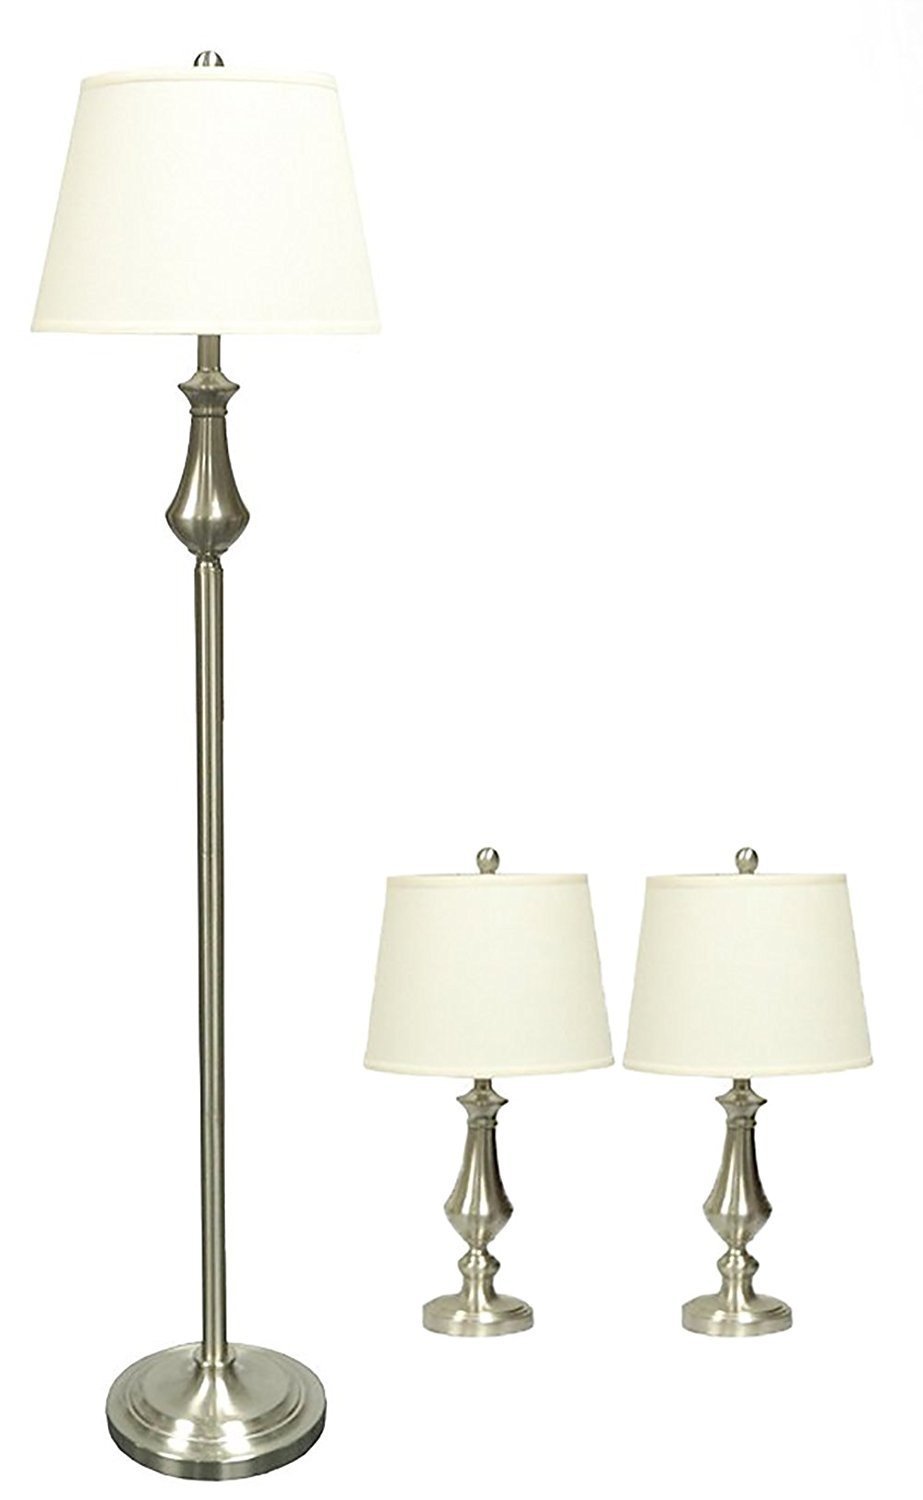 Grant 3 piece table and floor lamp set urbanest grant 3 piece table and floor lamp set geotapseo Gallery